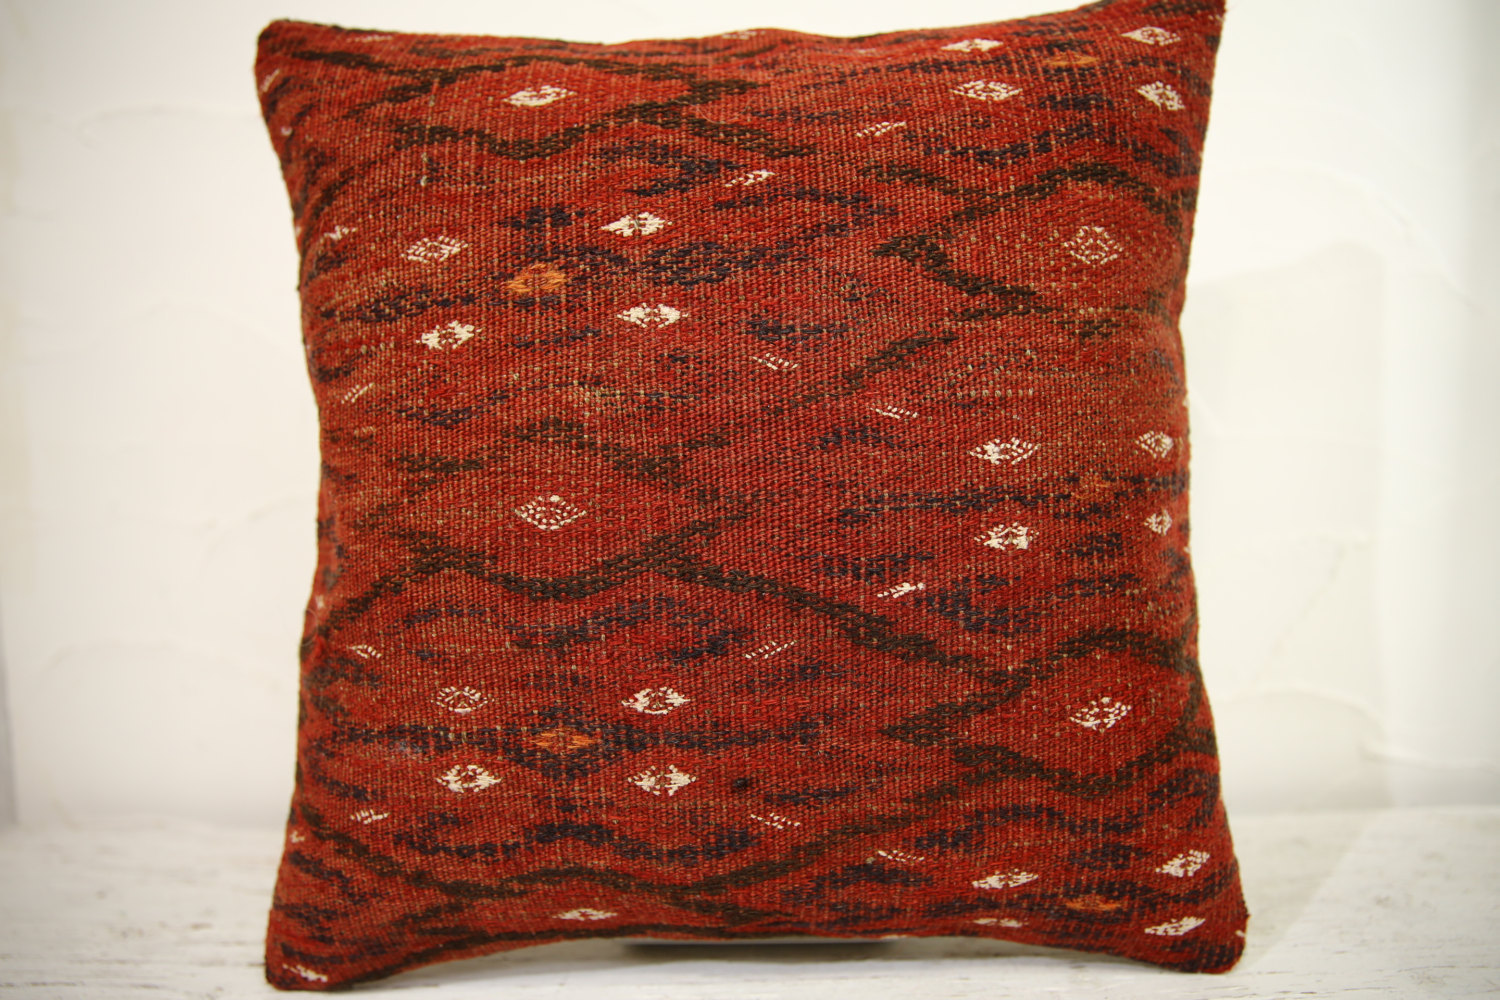 Kilim Pillows | 16x16 | Turkish pillows | 1250 | Accent Pillow,Decorative Pillow